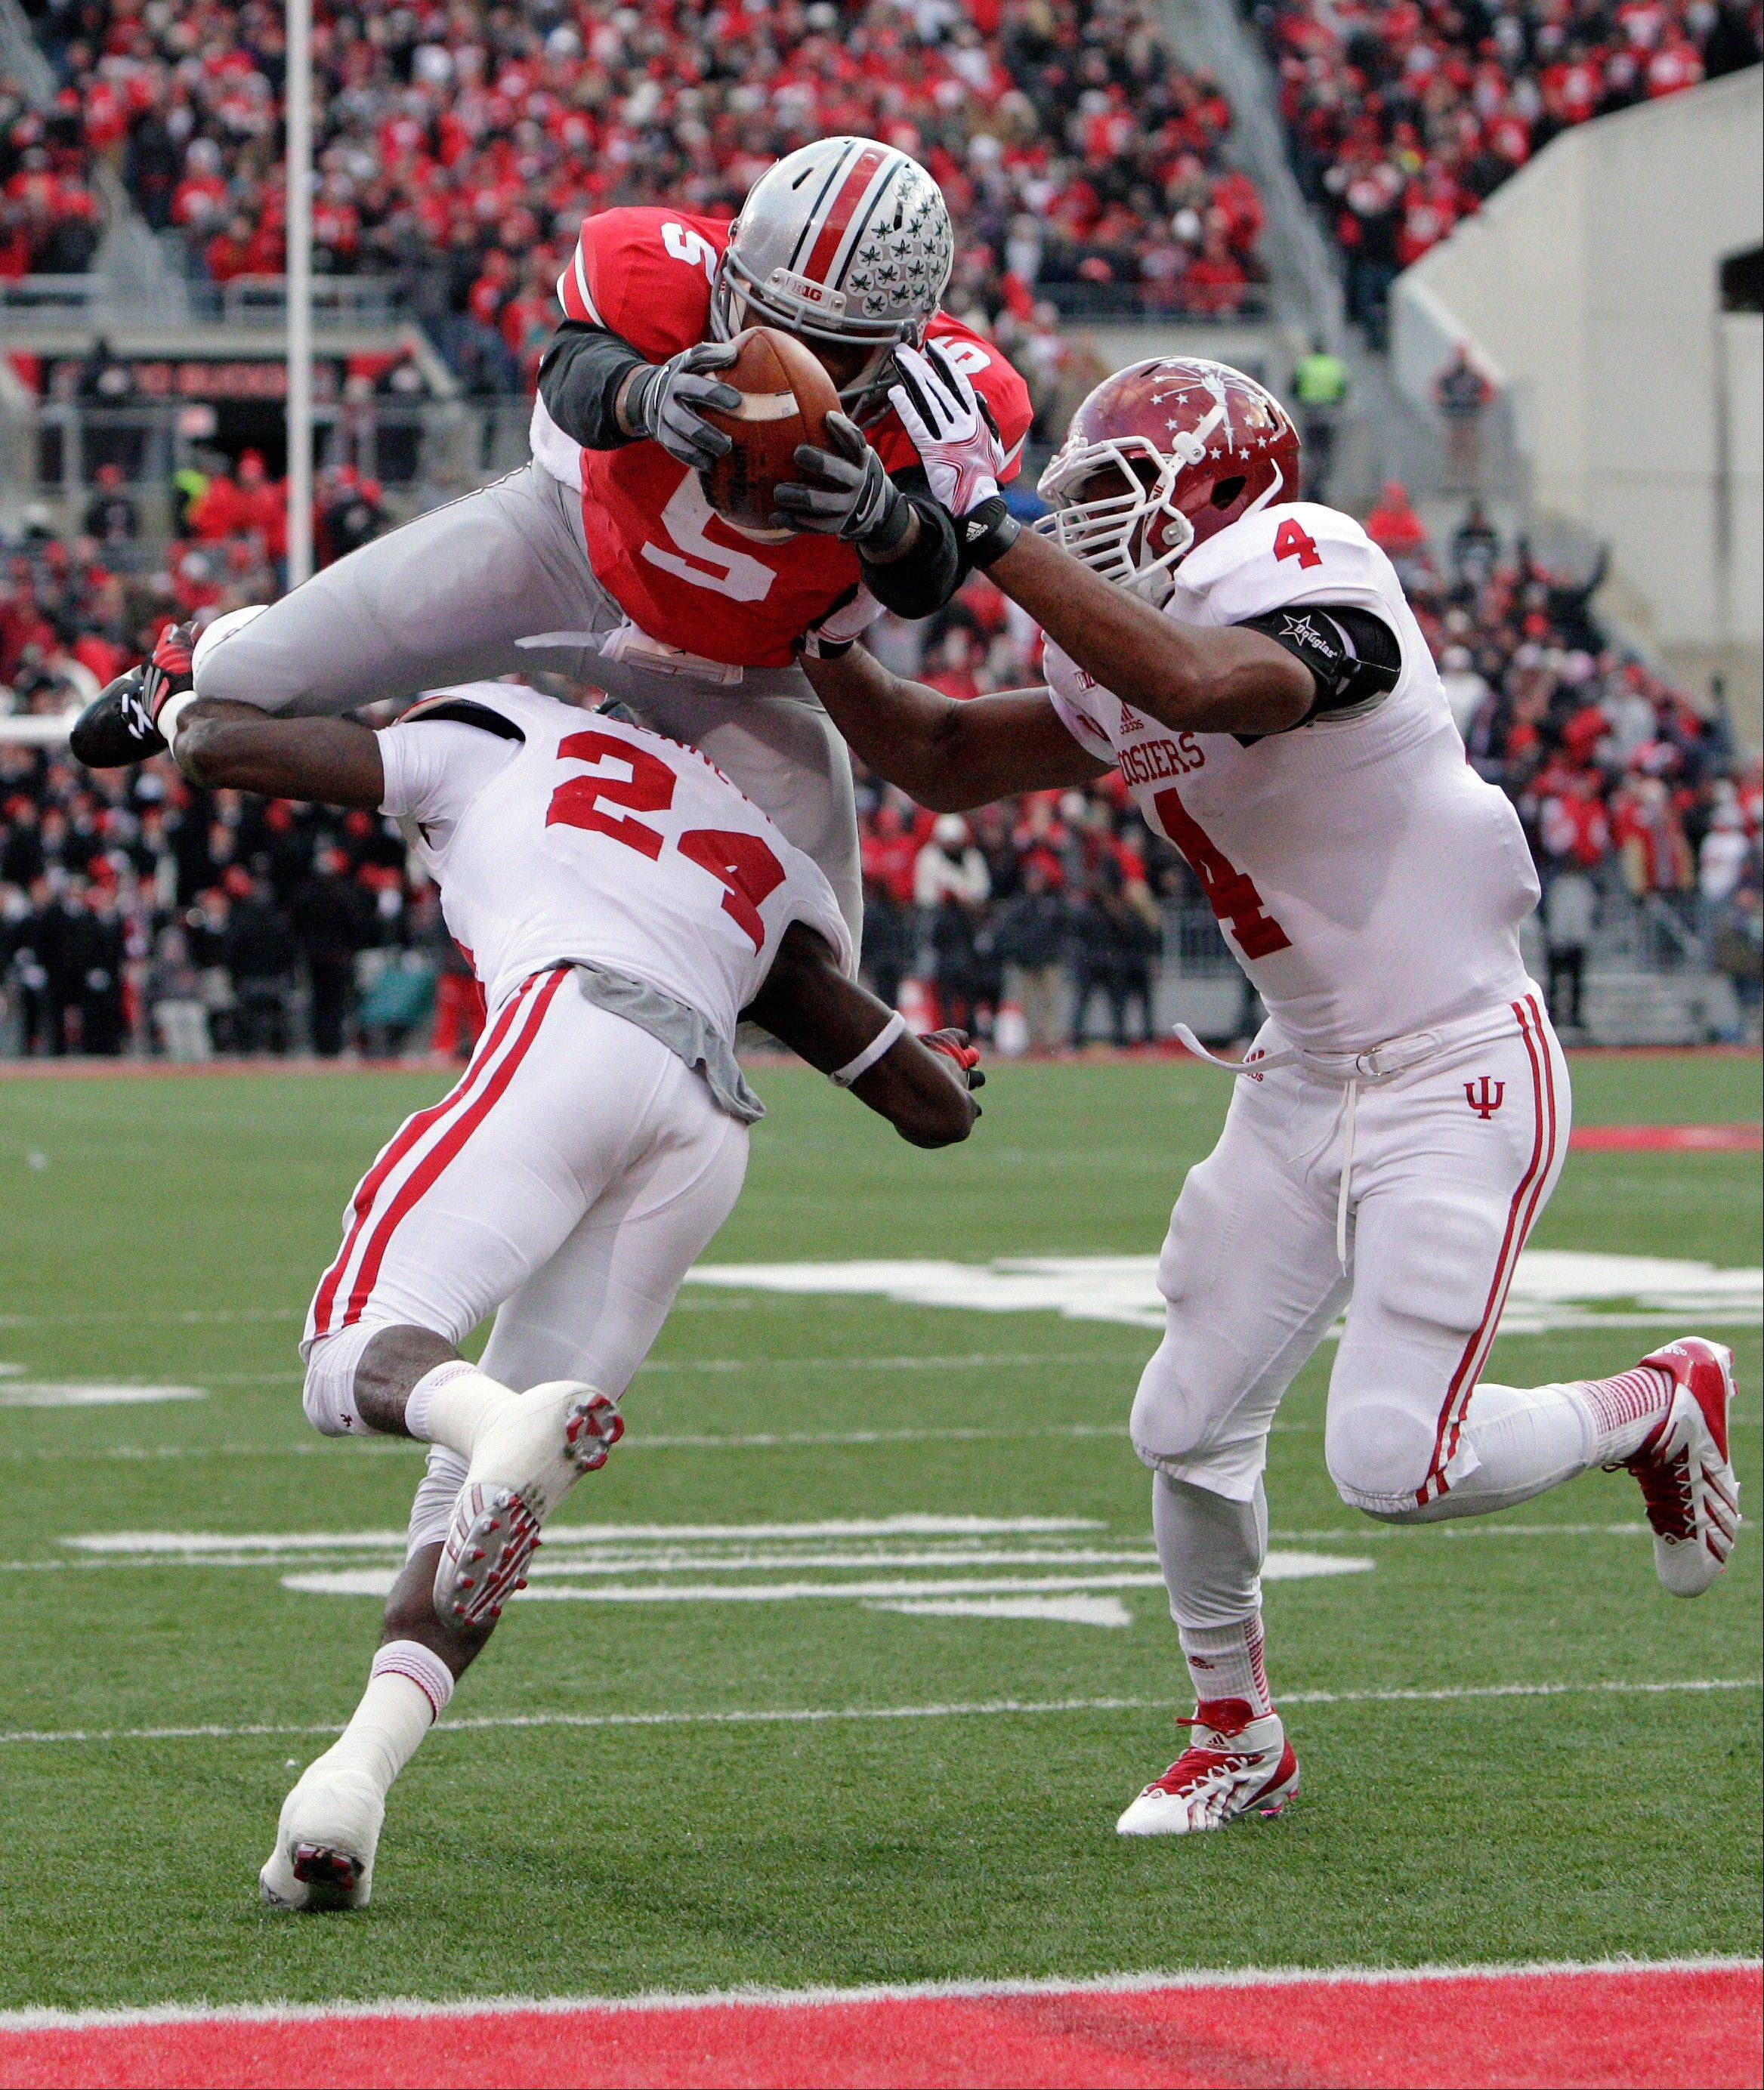 Ohio State quarterback Braxton Miller, top, scores a touchdown against Indiana�s Tim Bennett, left, and Forisse Hardin during the second quarter of Saturday�s game in Columbus, Ohio.